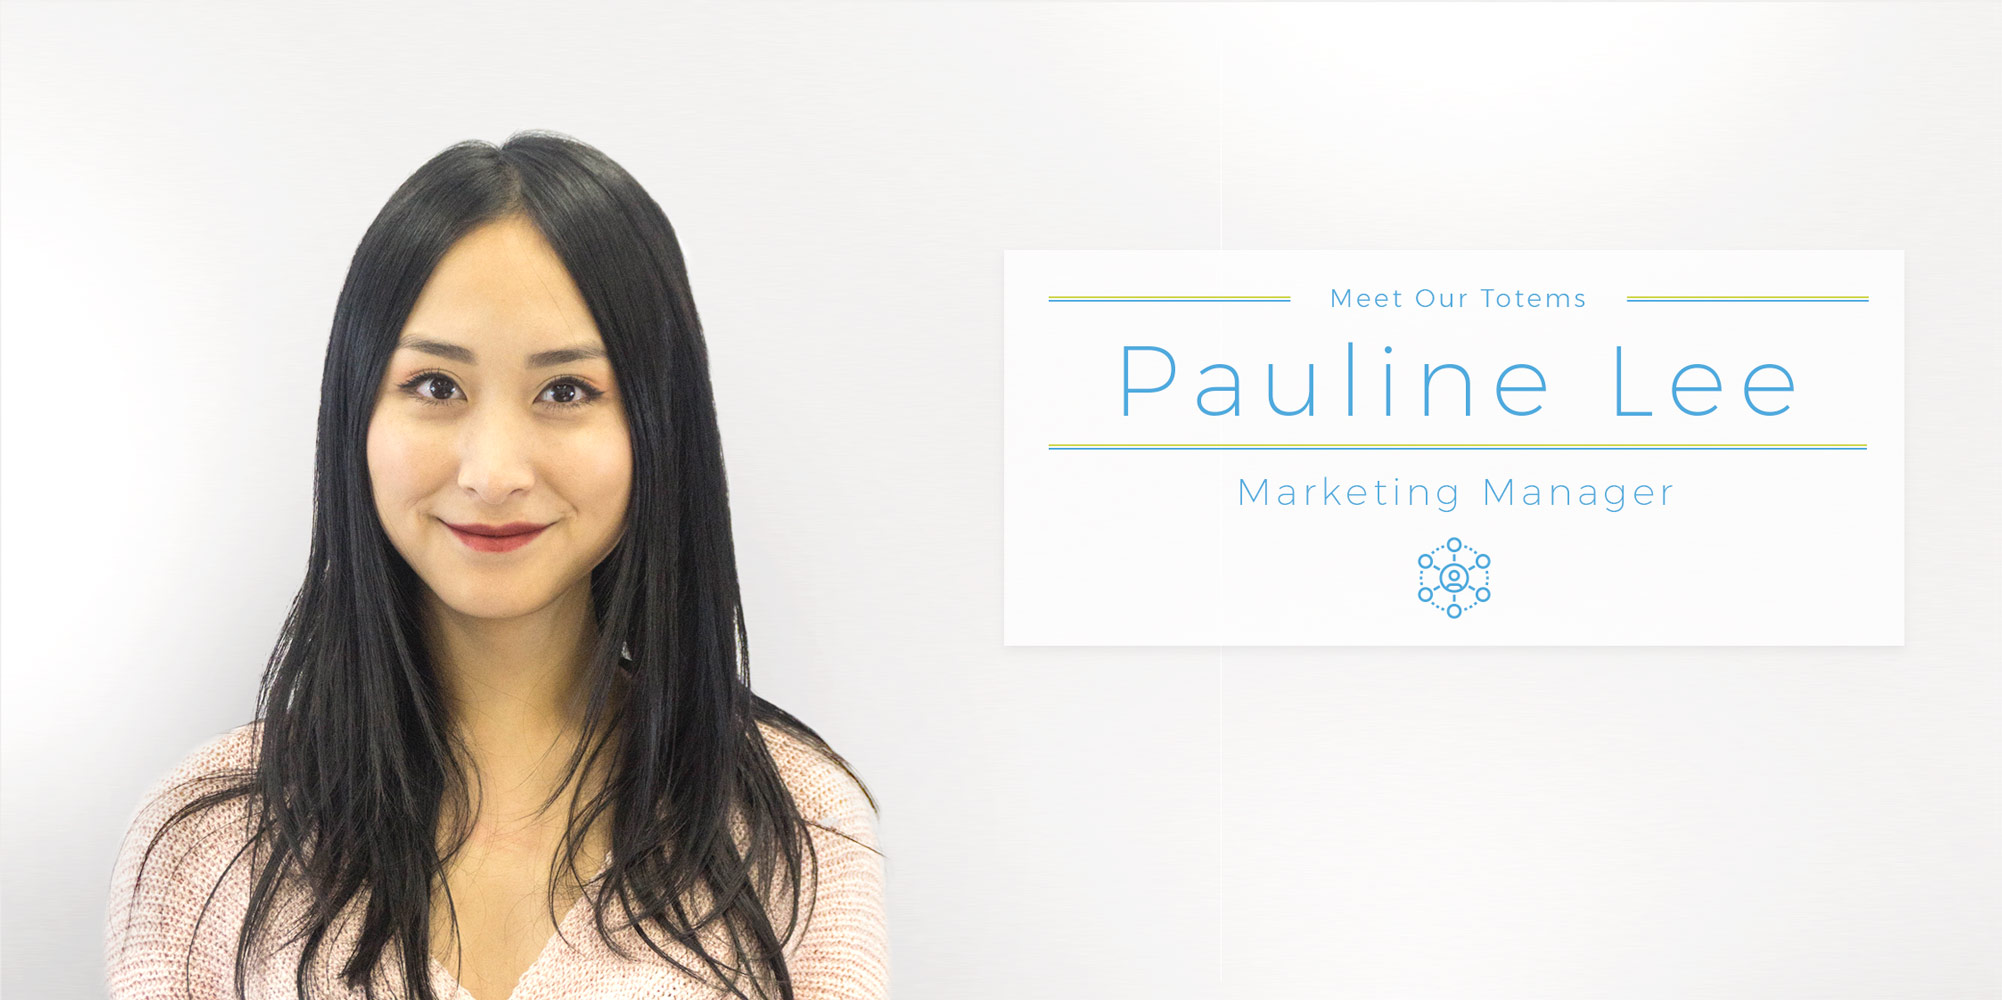 Meet Our Totems – Pauline